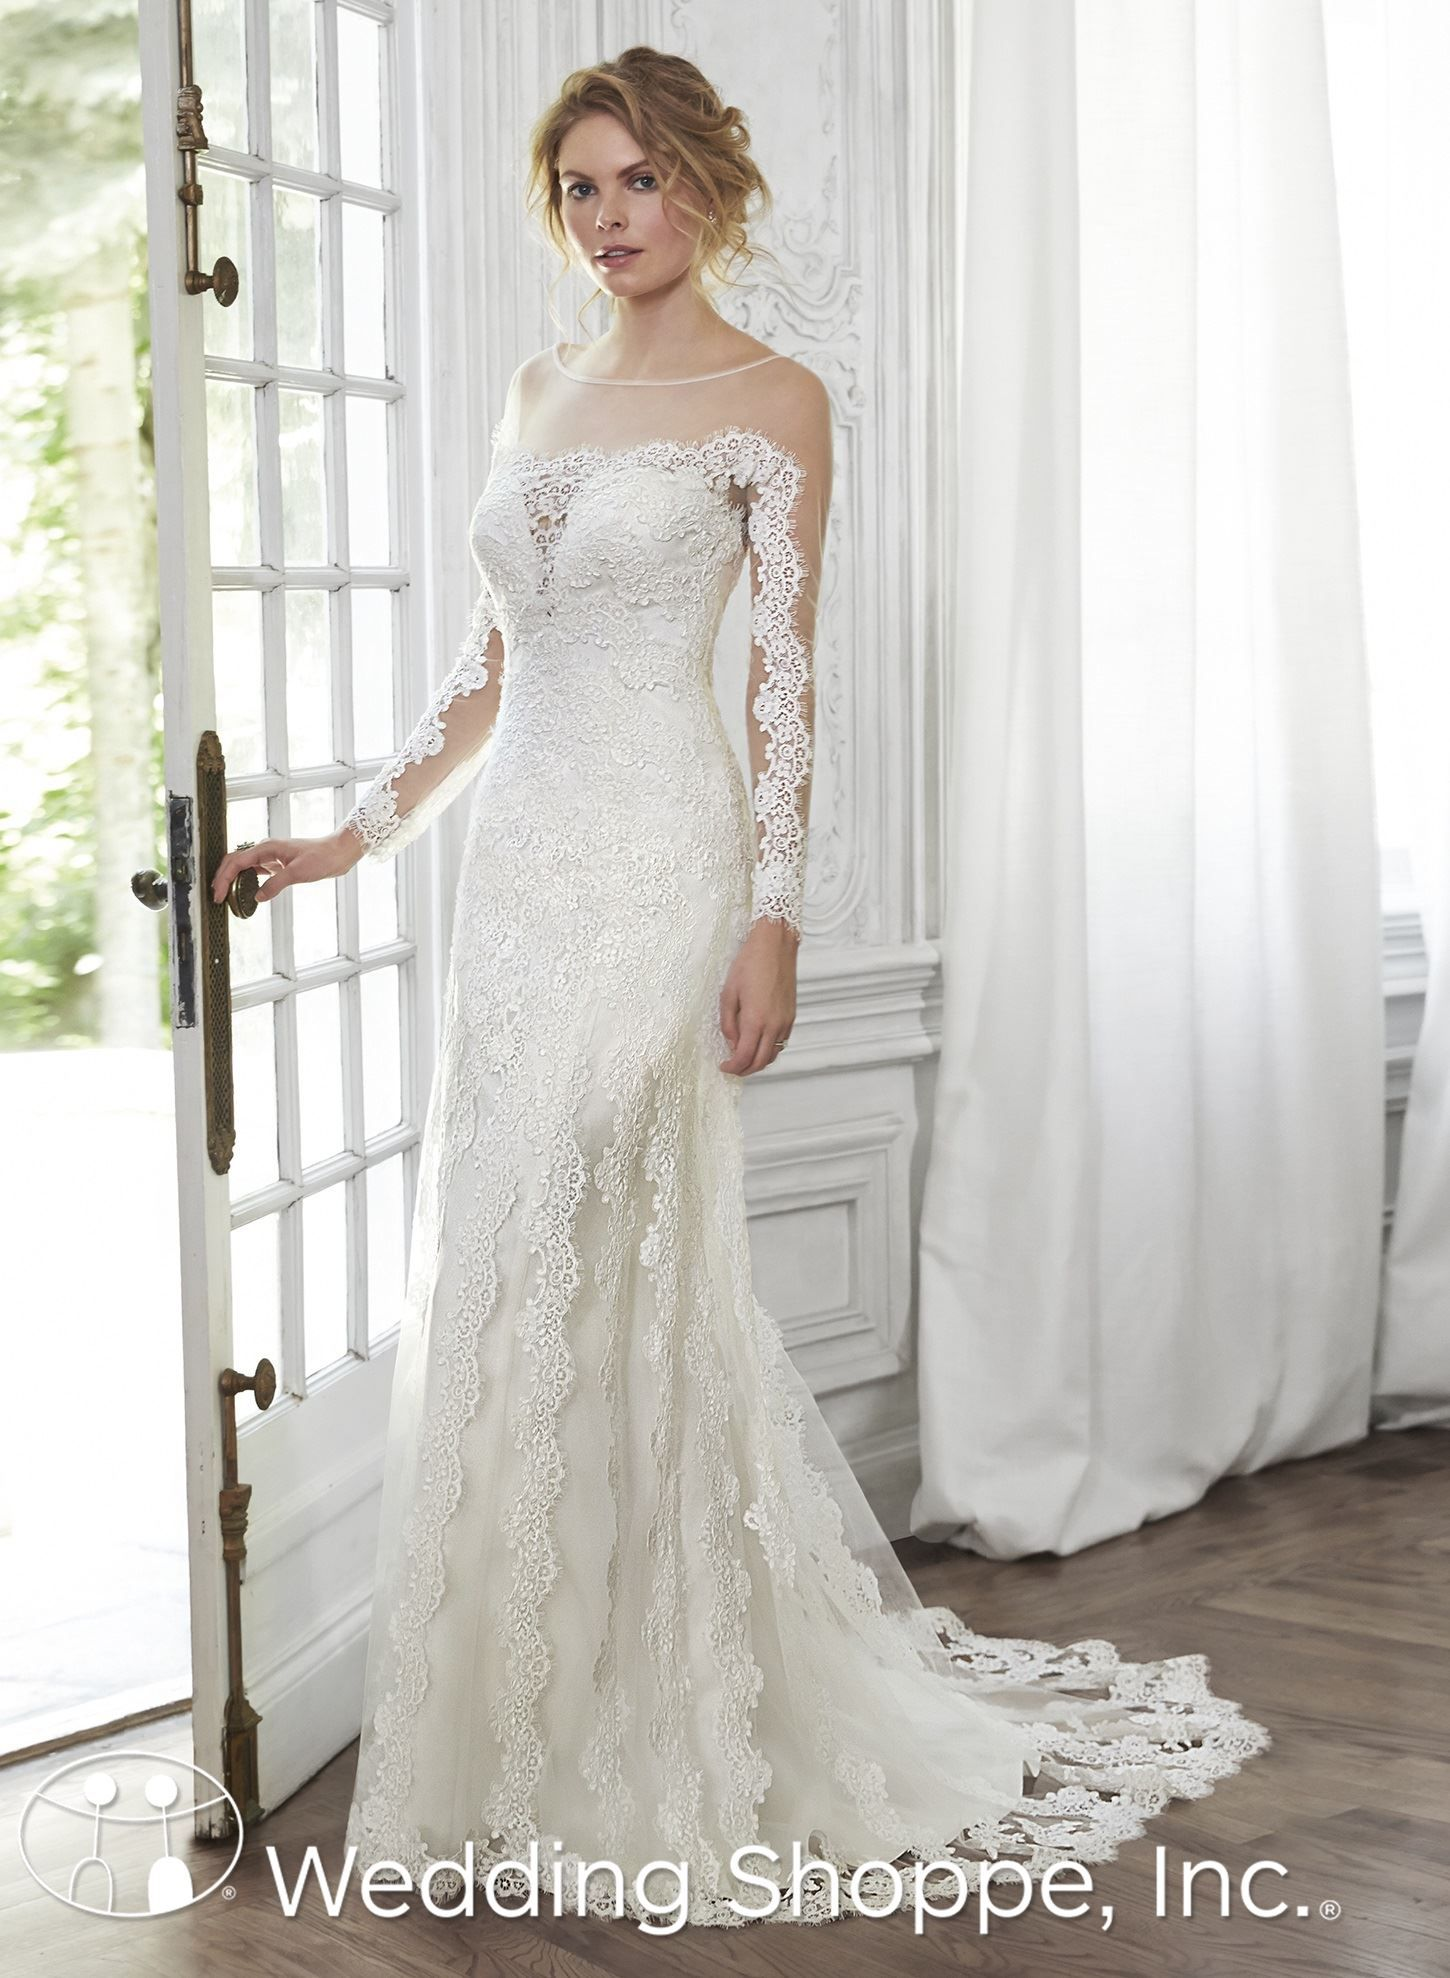 fdefa38354f Maggie Sottero - inga- Corded embroidered lace appliqués lay atop illusion  sleeves and a bateau neckline in this sheath gown